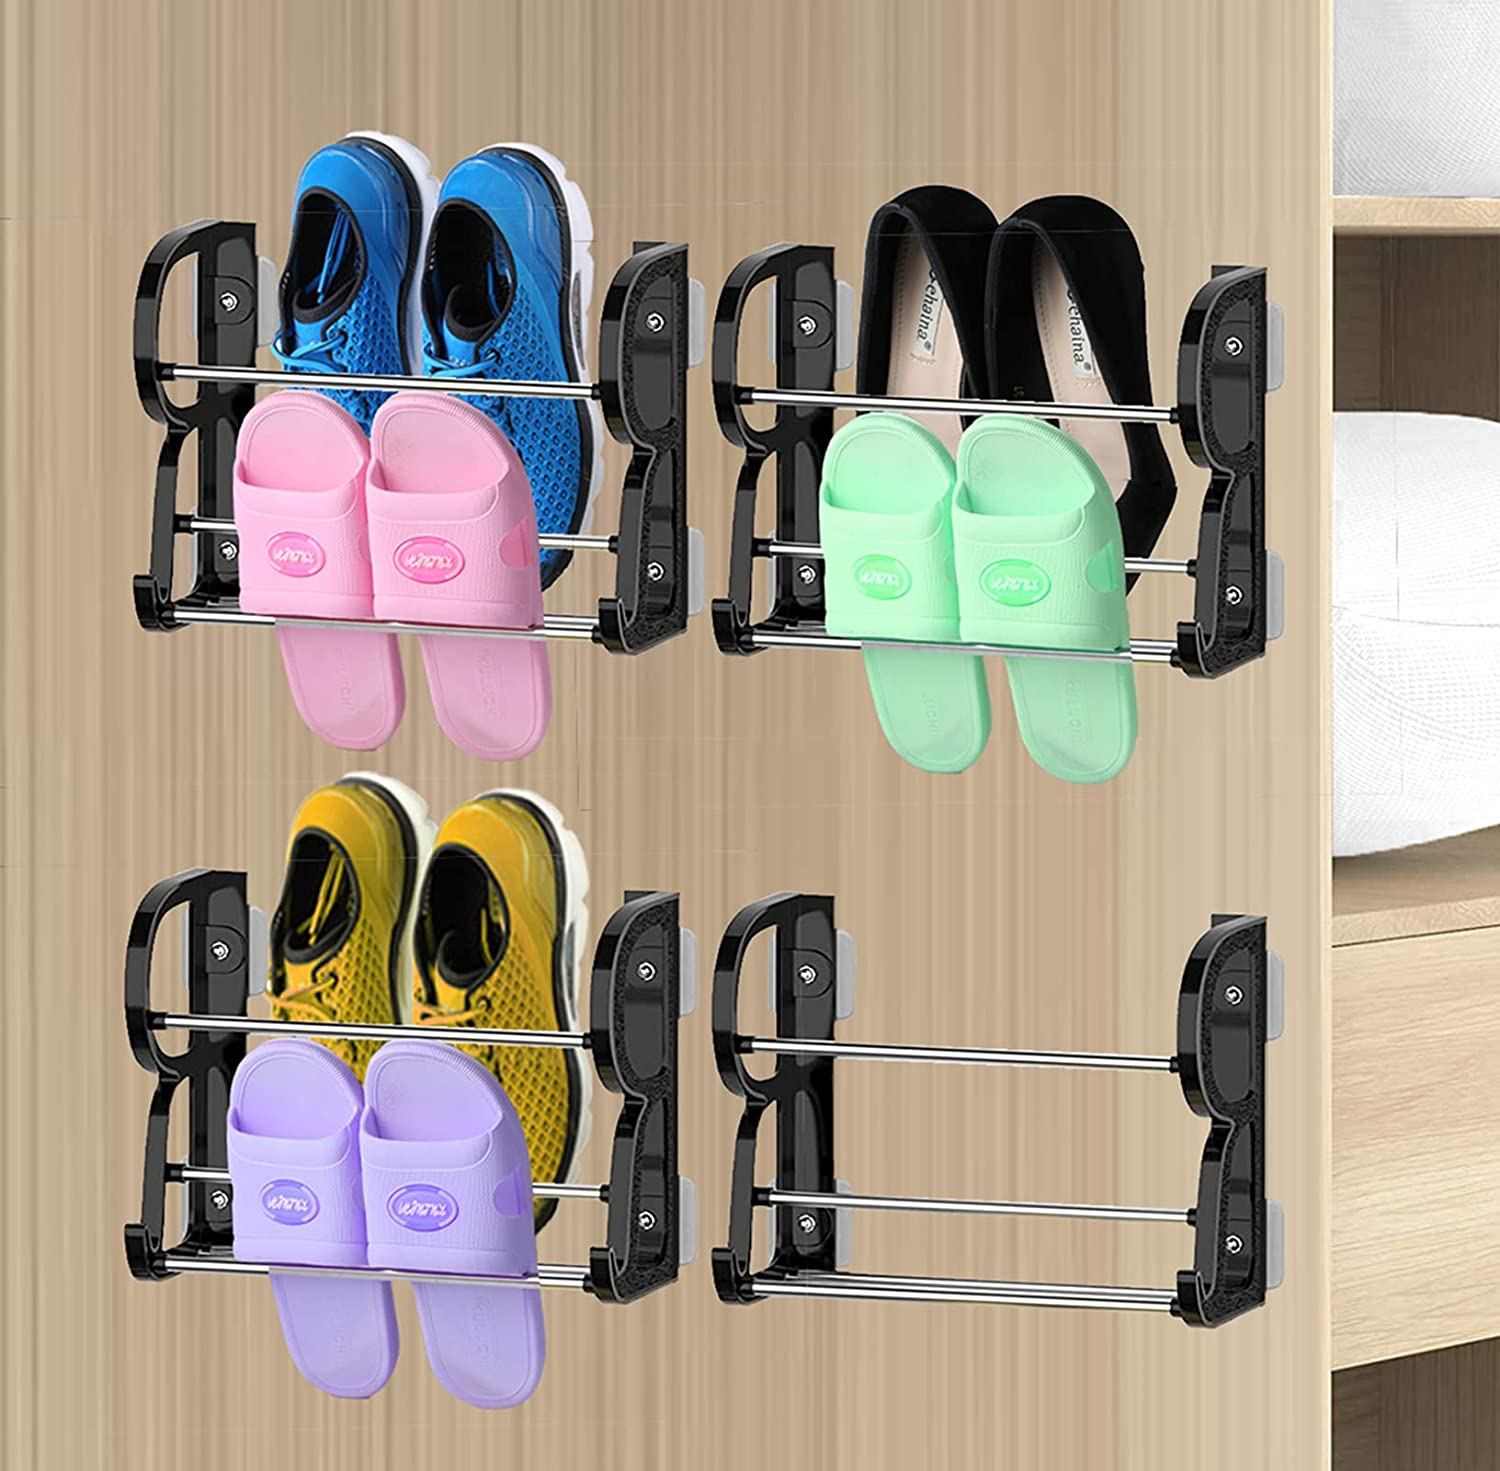 Wall Mounted Shoe Rack Excellent 4 Pack The Door Price reduction Organizer Over